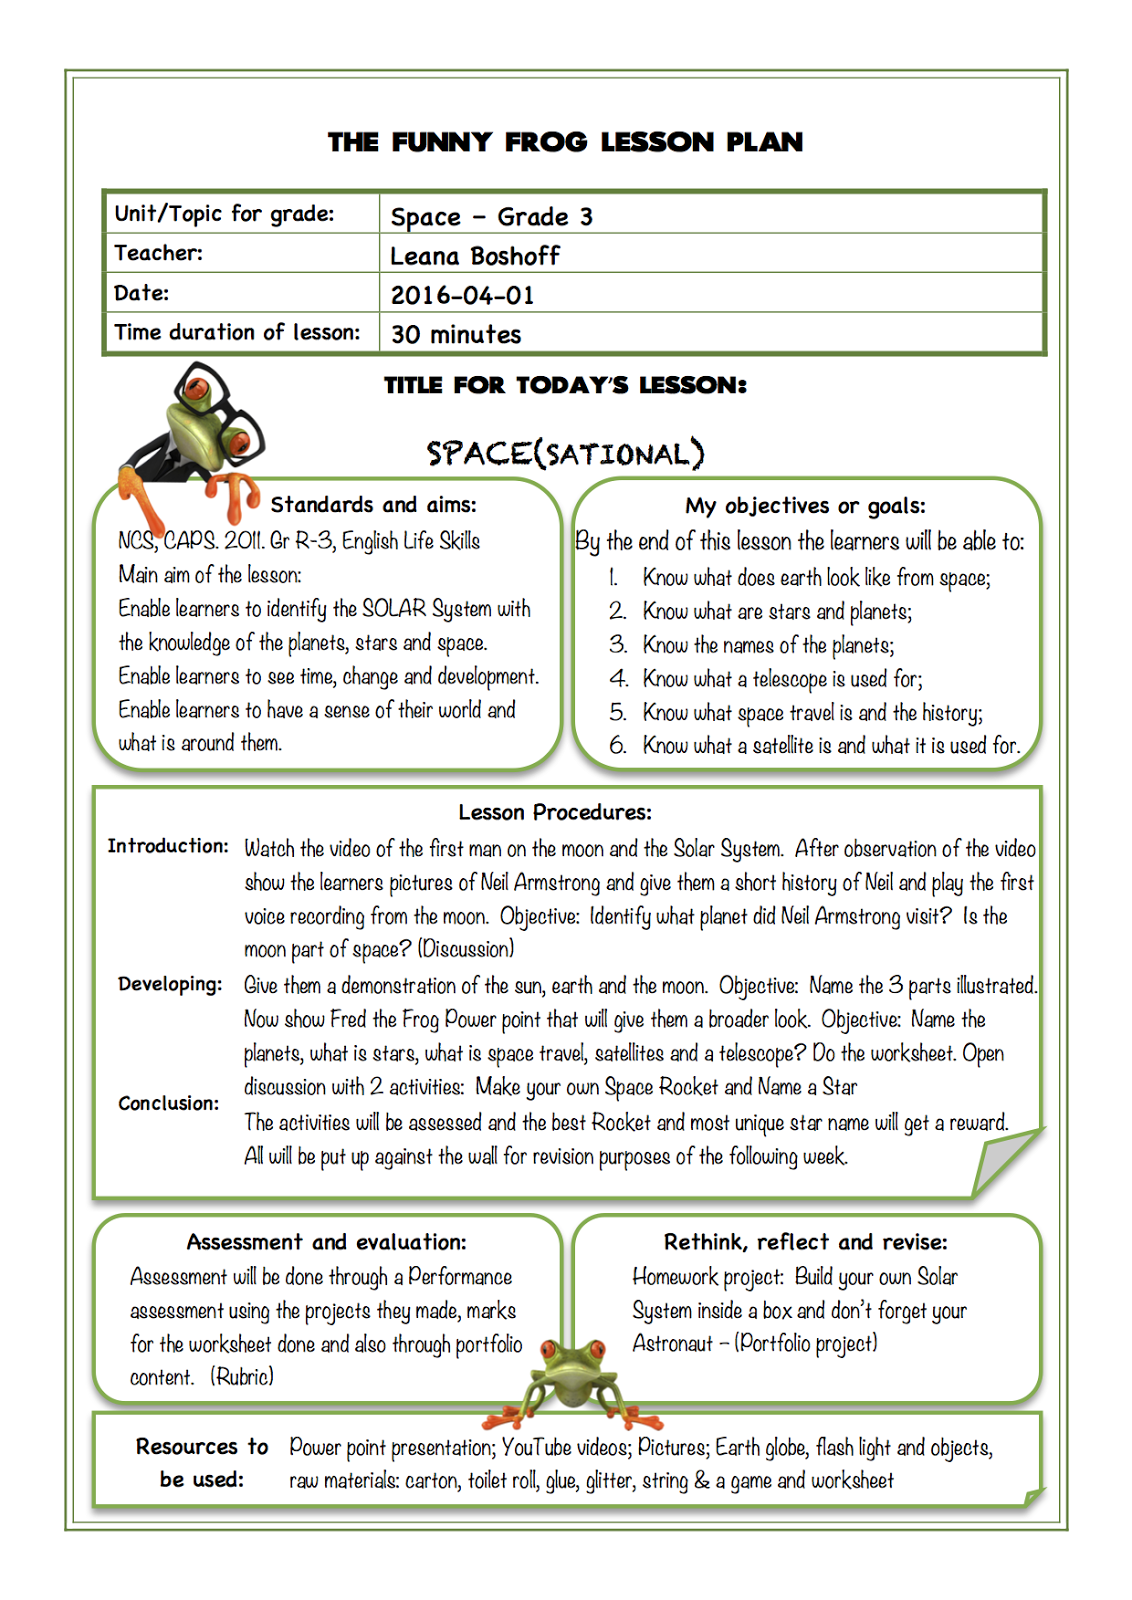 small resolution of The Funny Frog Classroom: Space(sational) - Grade 3 Lesson